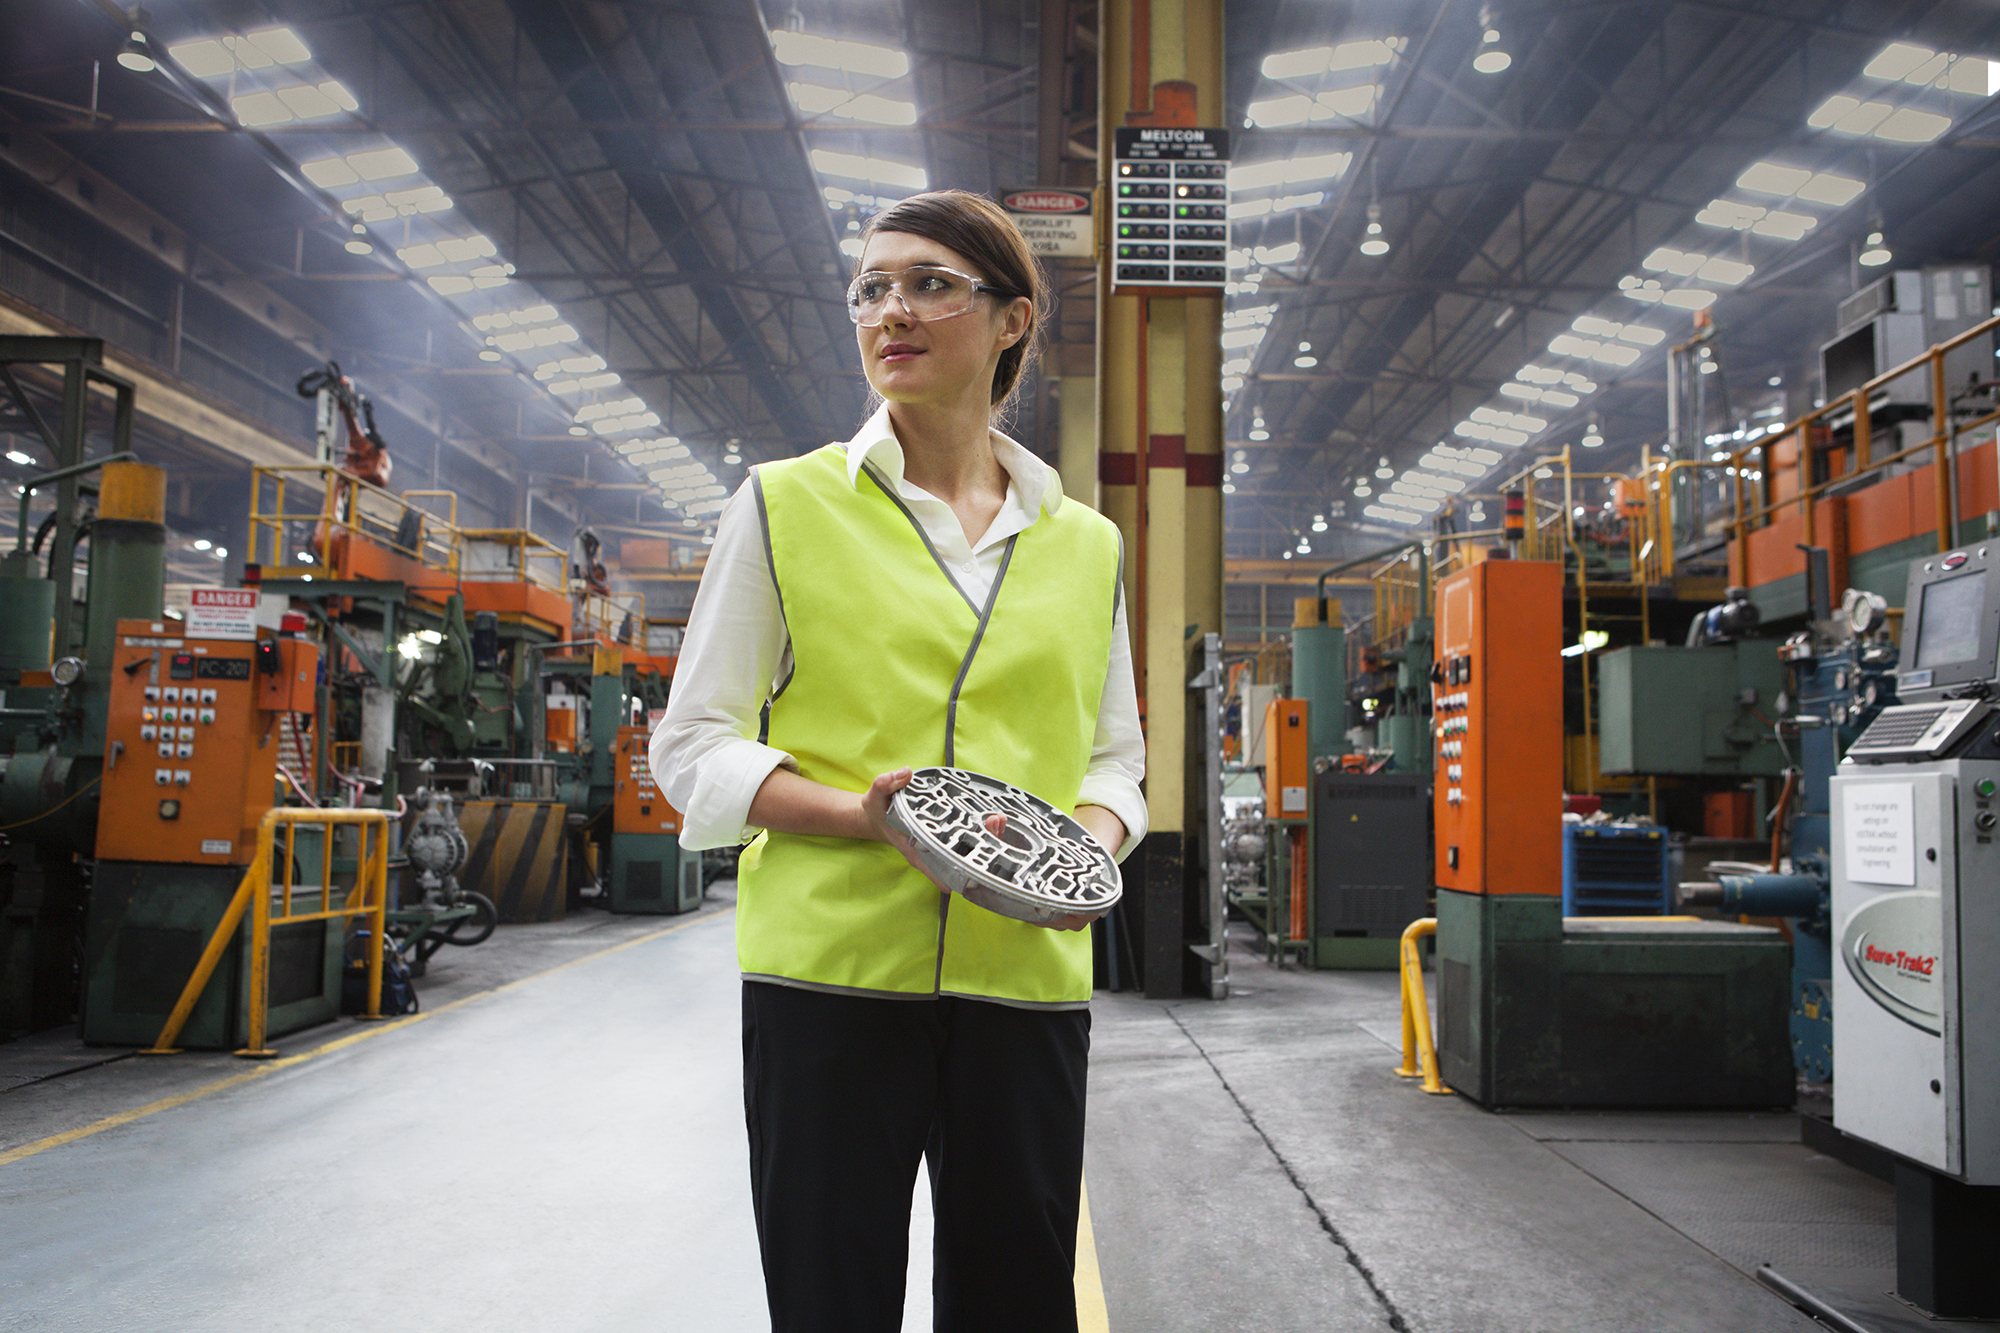 A woman wearing safety glasses and a high visibility vest at Nissan's plant in Melbourne.